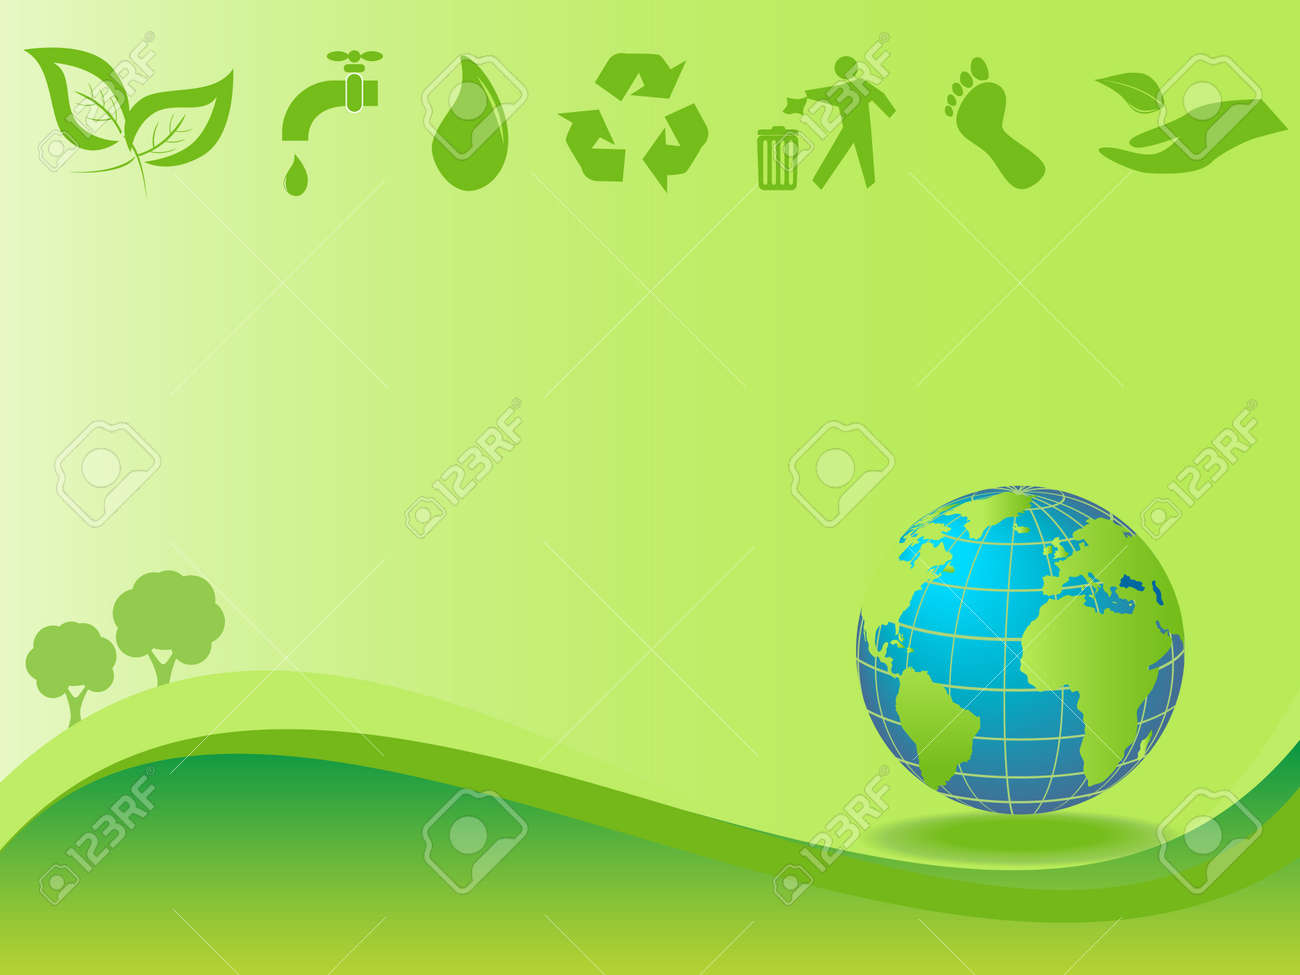 images of clean and green environment